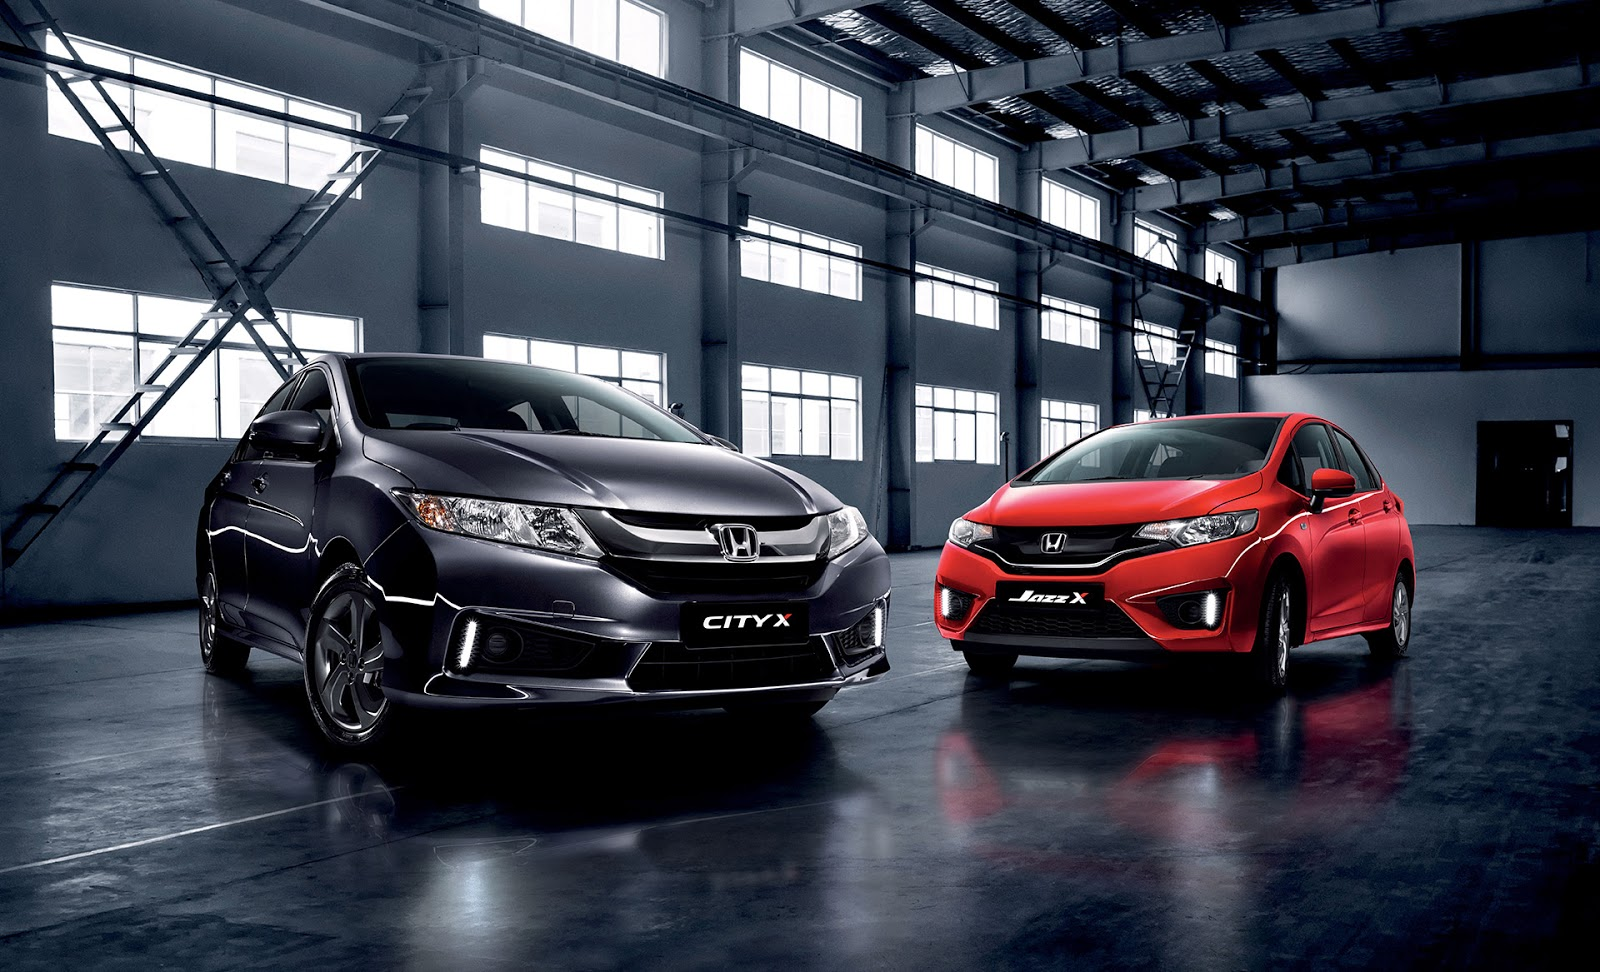 Opinion My Actual Thoughts On The Newly Launched Honda City X And Jazz Malaysian Specced Limited Editions